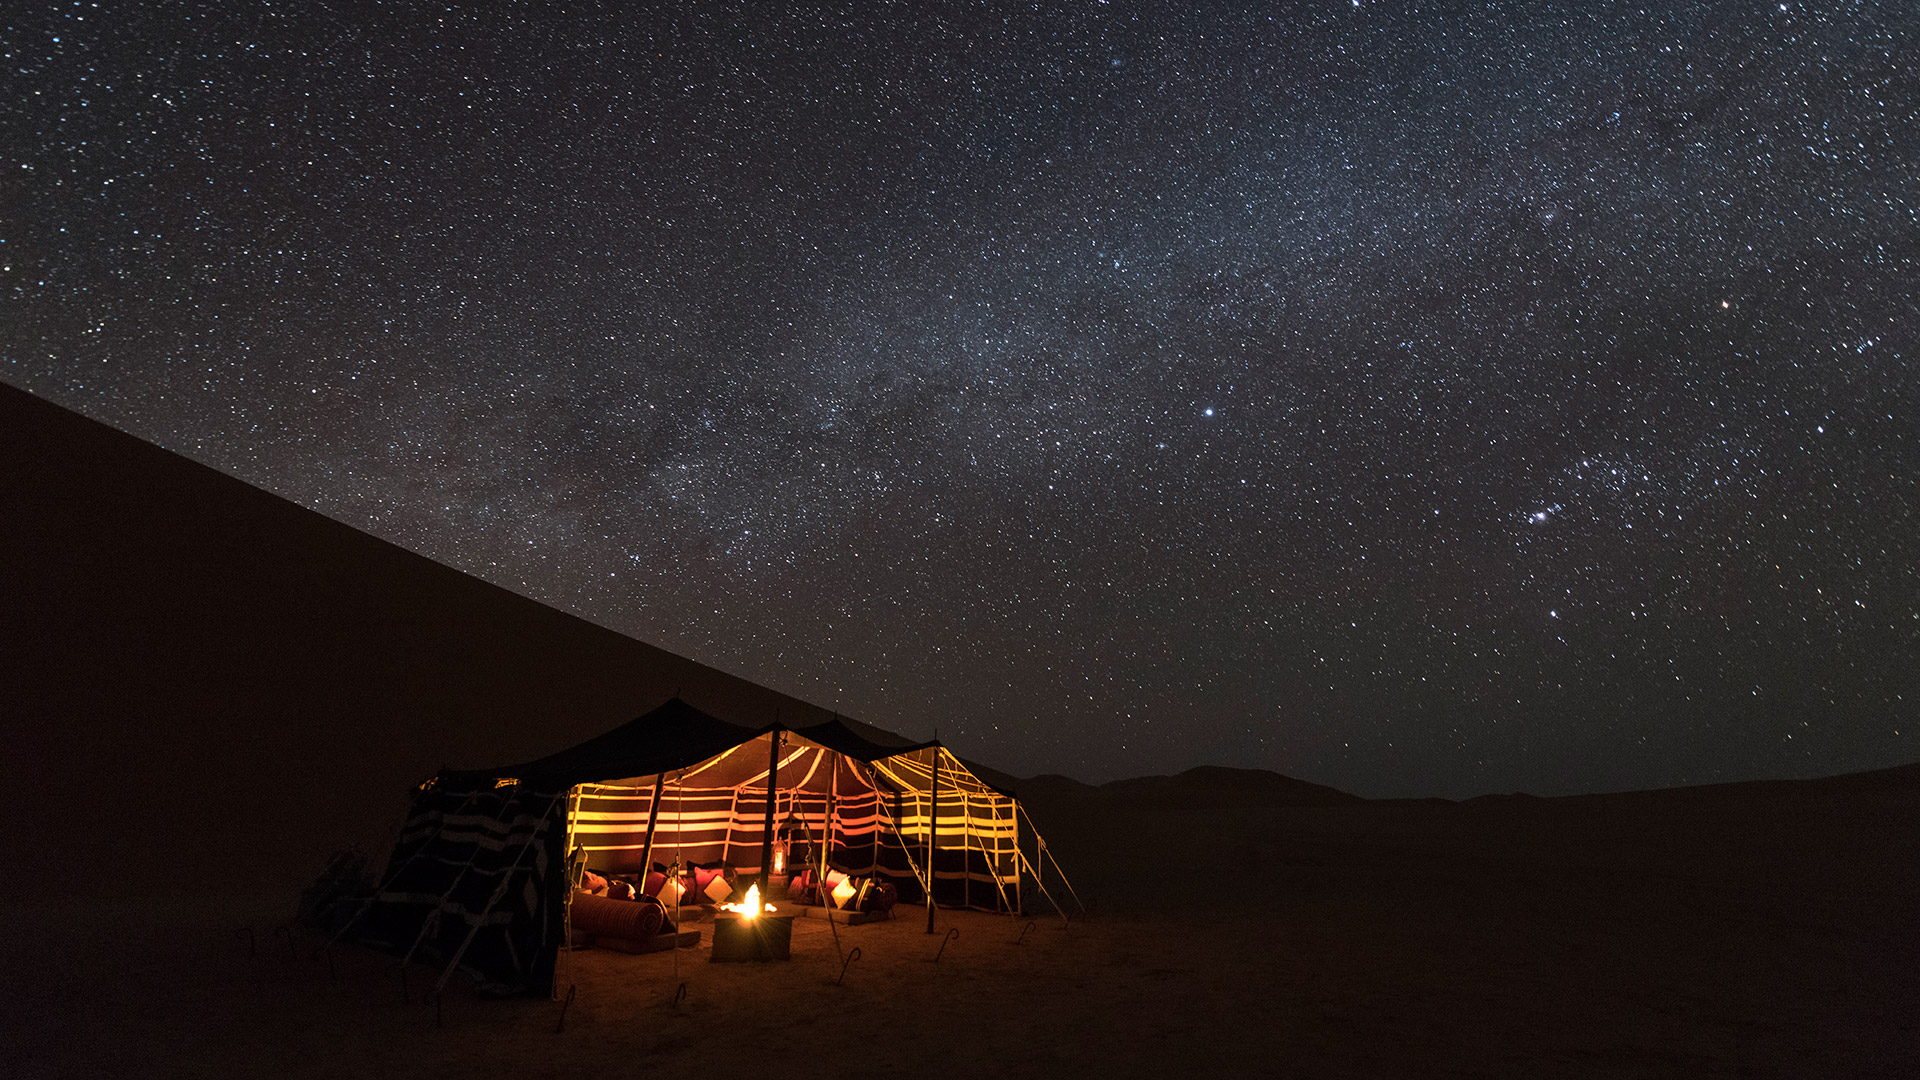 Our bedouin style tent under the stars